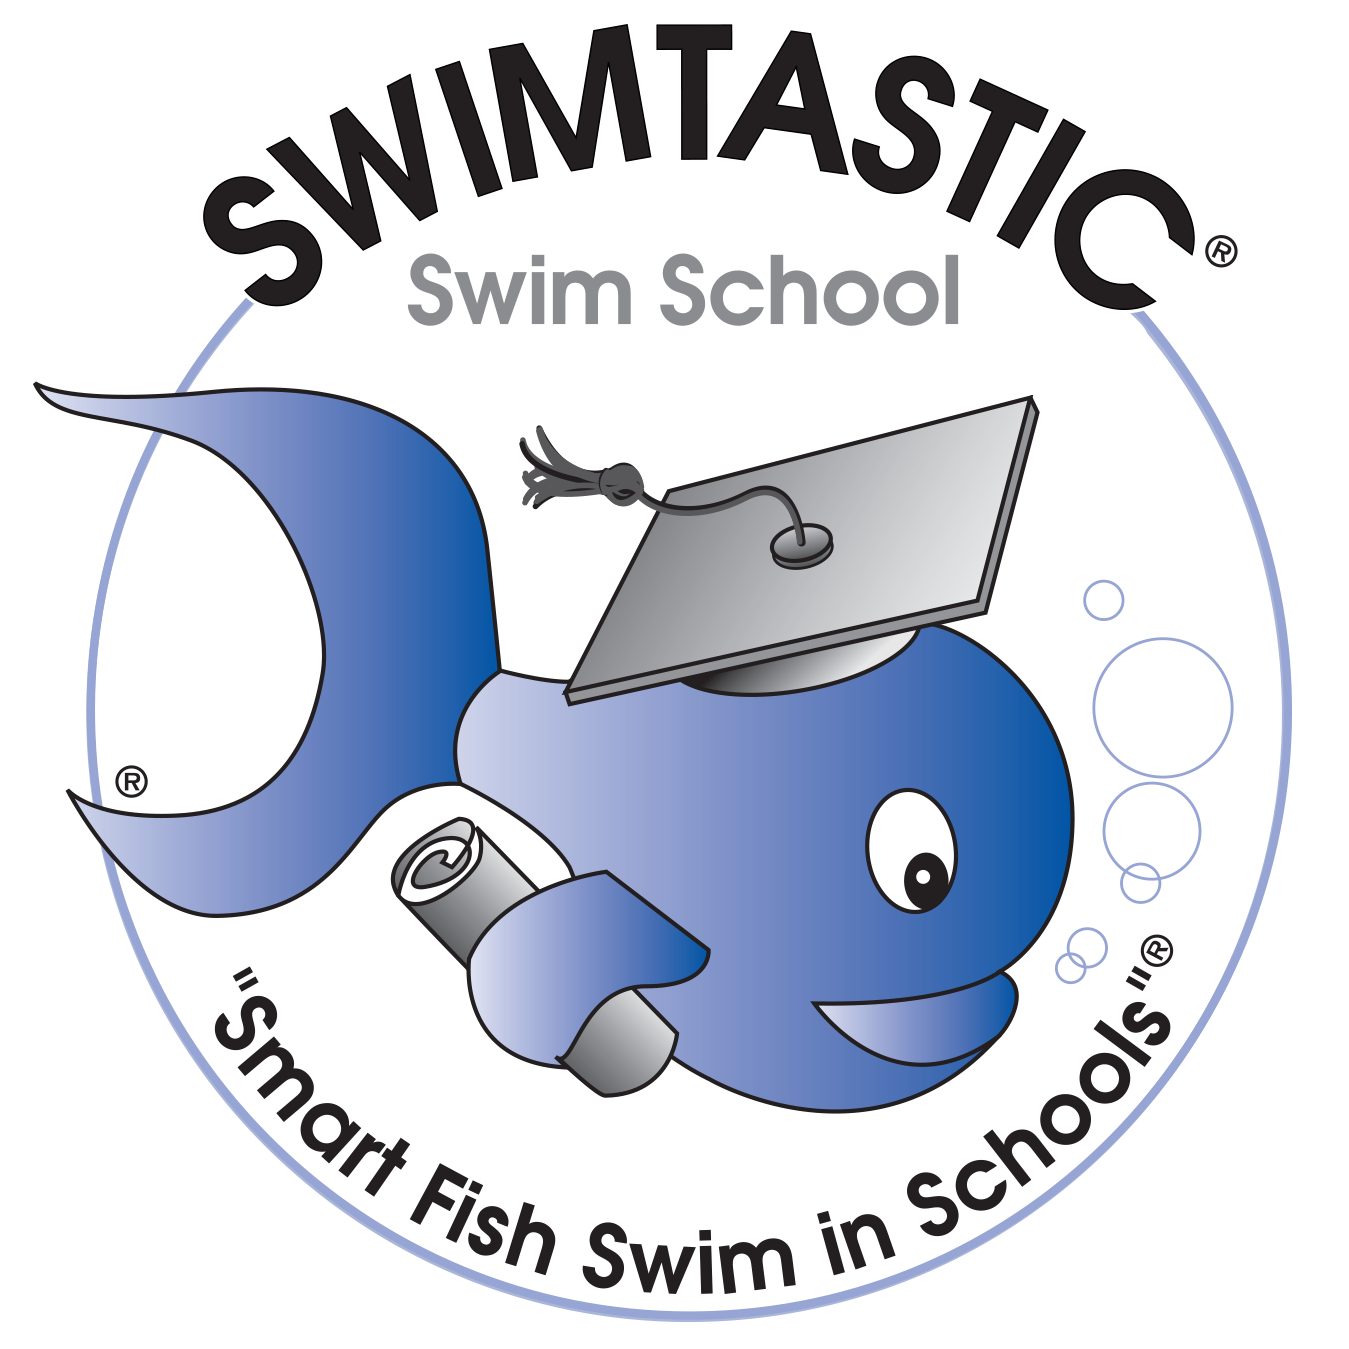 Swimtastic_Franchise_Image_transparent_bkgrnd.png